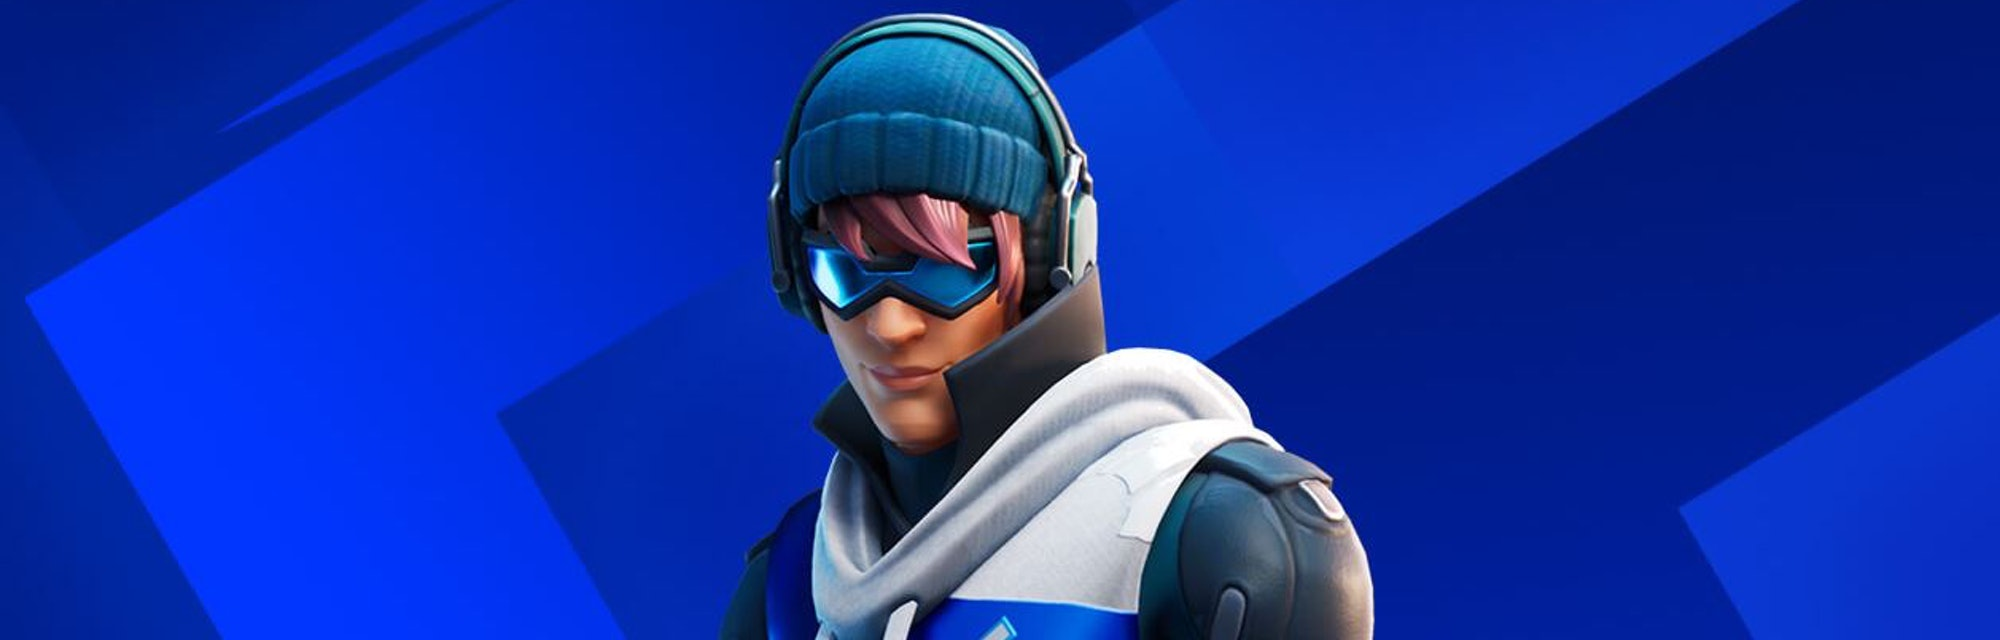 fortnite playstation cup start time key art no text